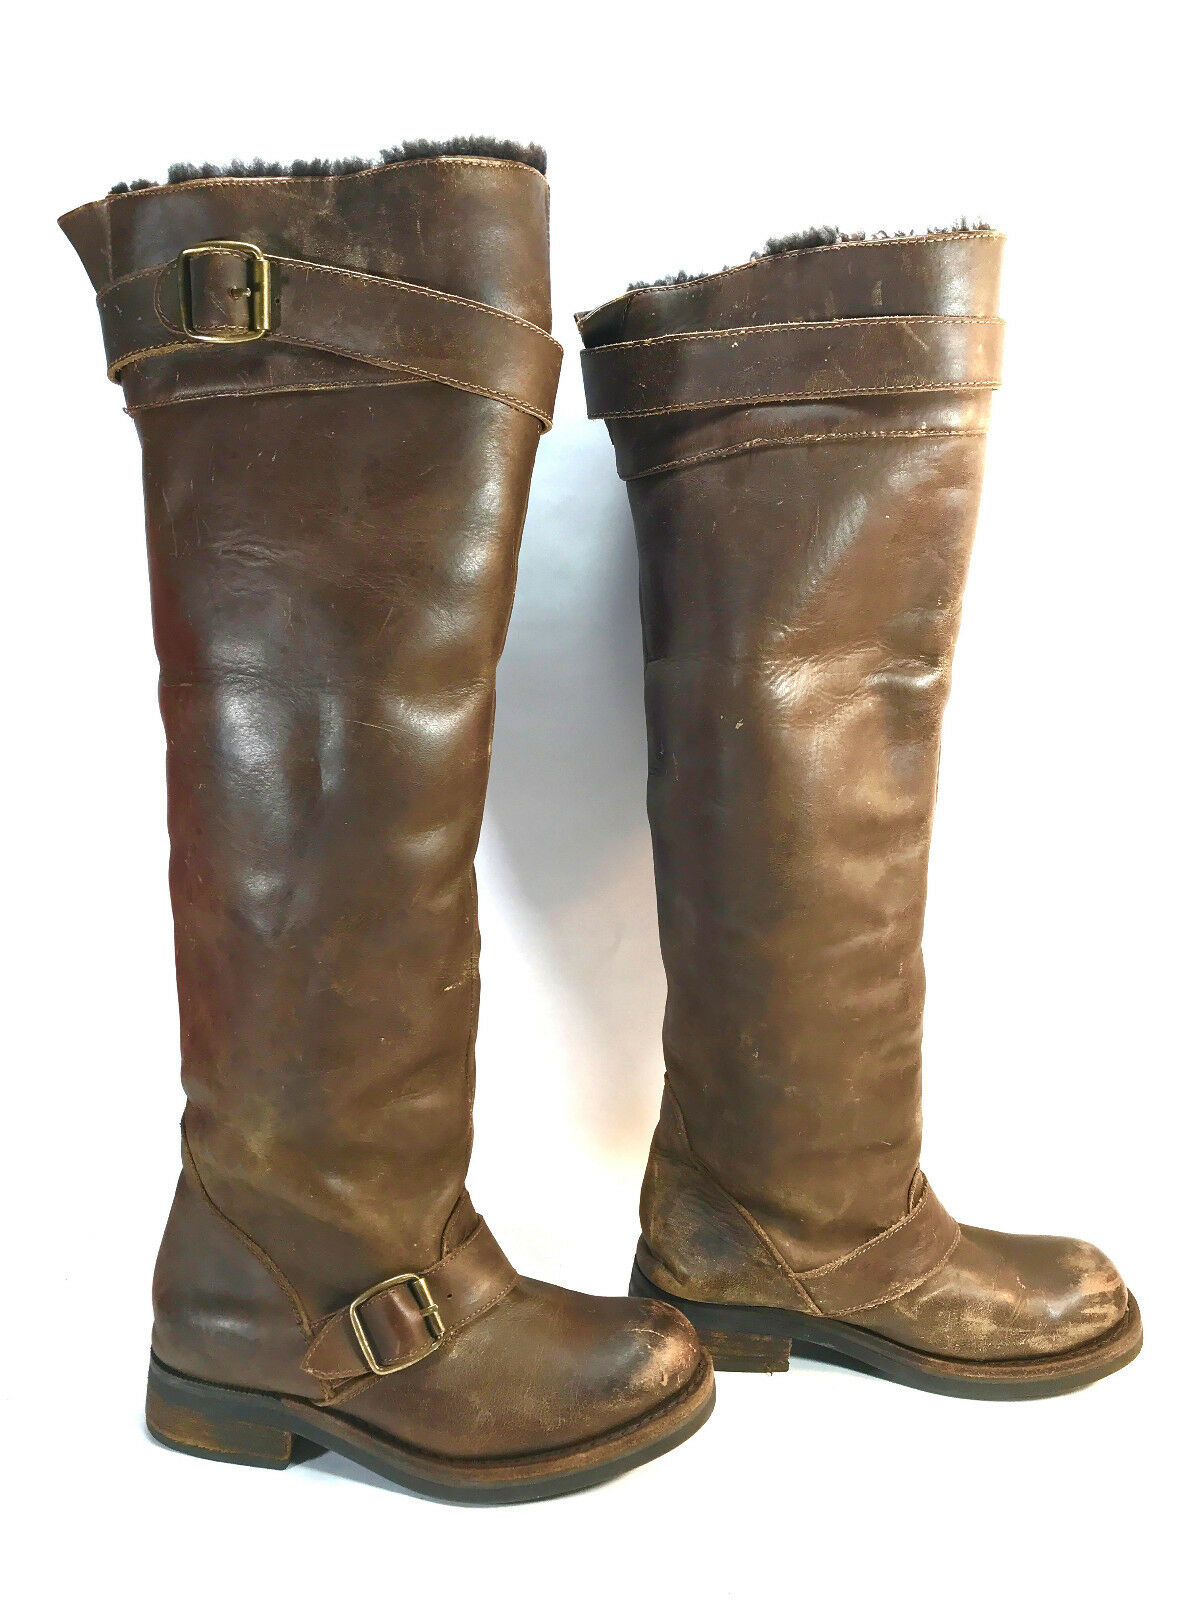 3b9280e25962 JEFFREY CAMPBELL distressed leather sheepskin 2 buckle side zip moto boots  brown oewzjt2381-Women s Boots